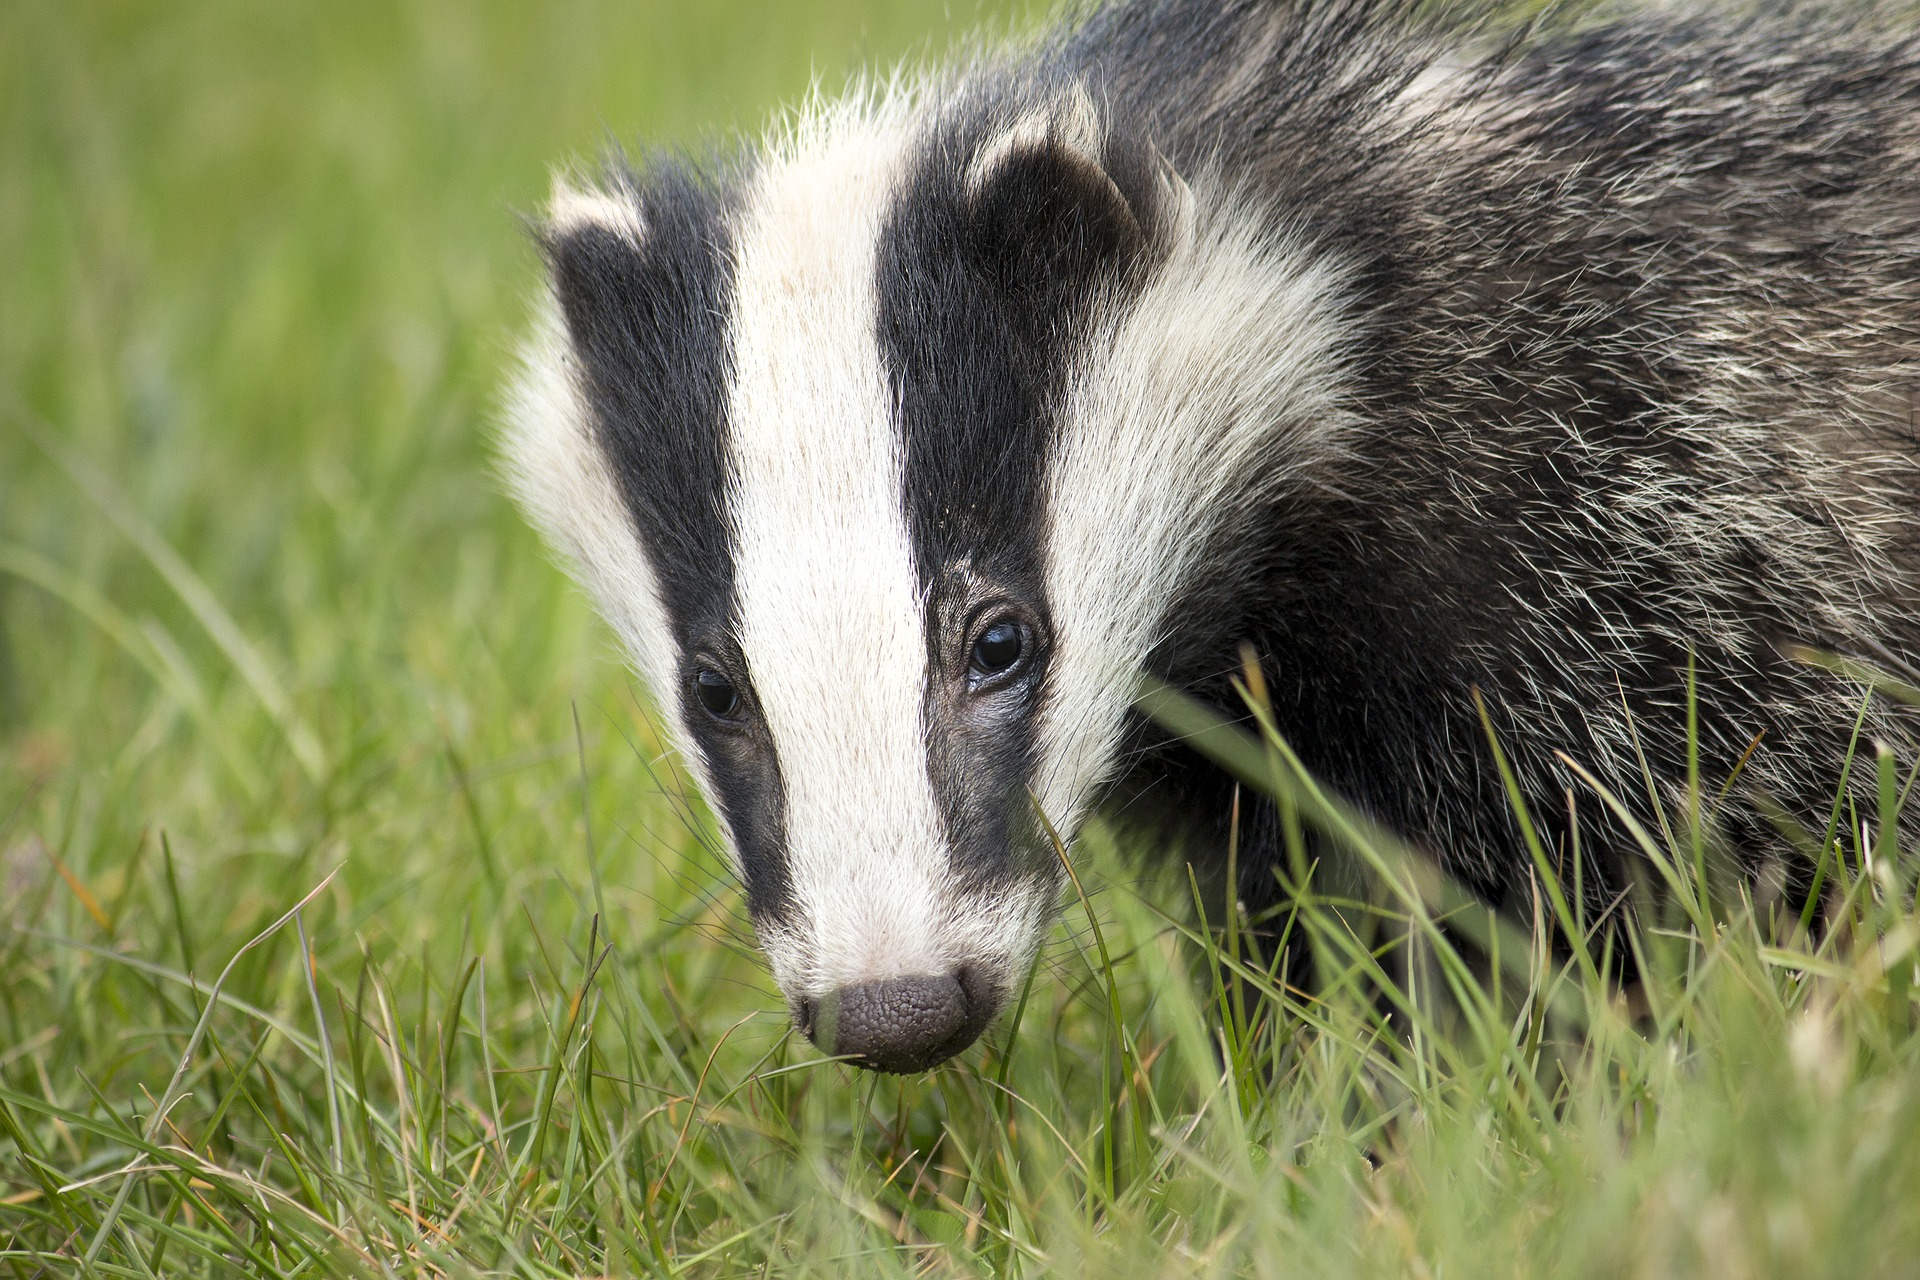 VICTORY! Priceline Ditches Badger-Hair Brushes Following PETA Exposé